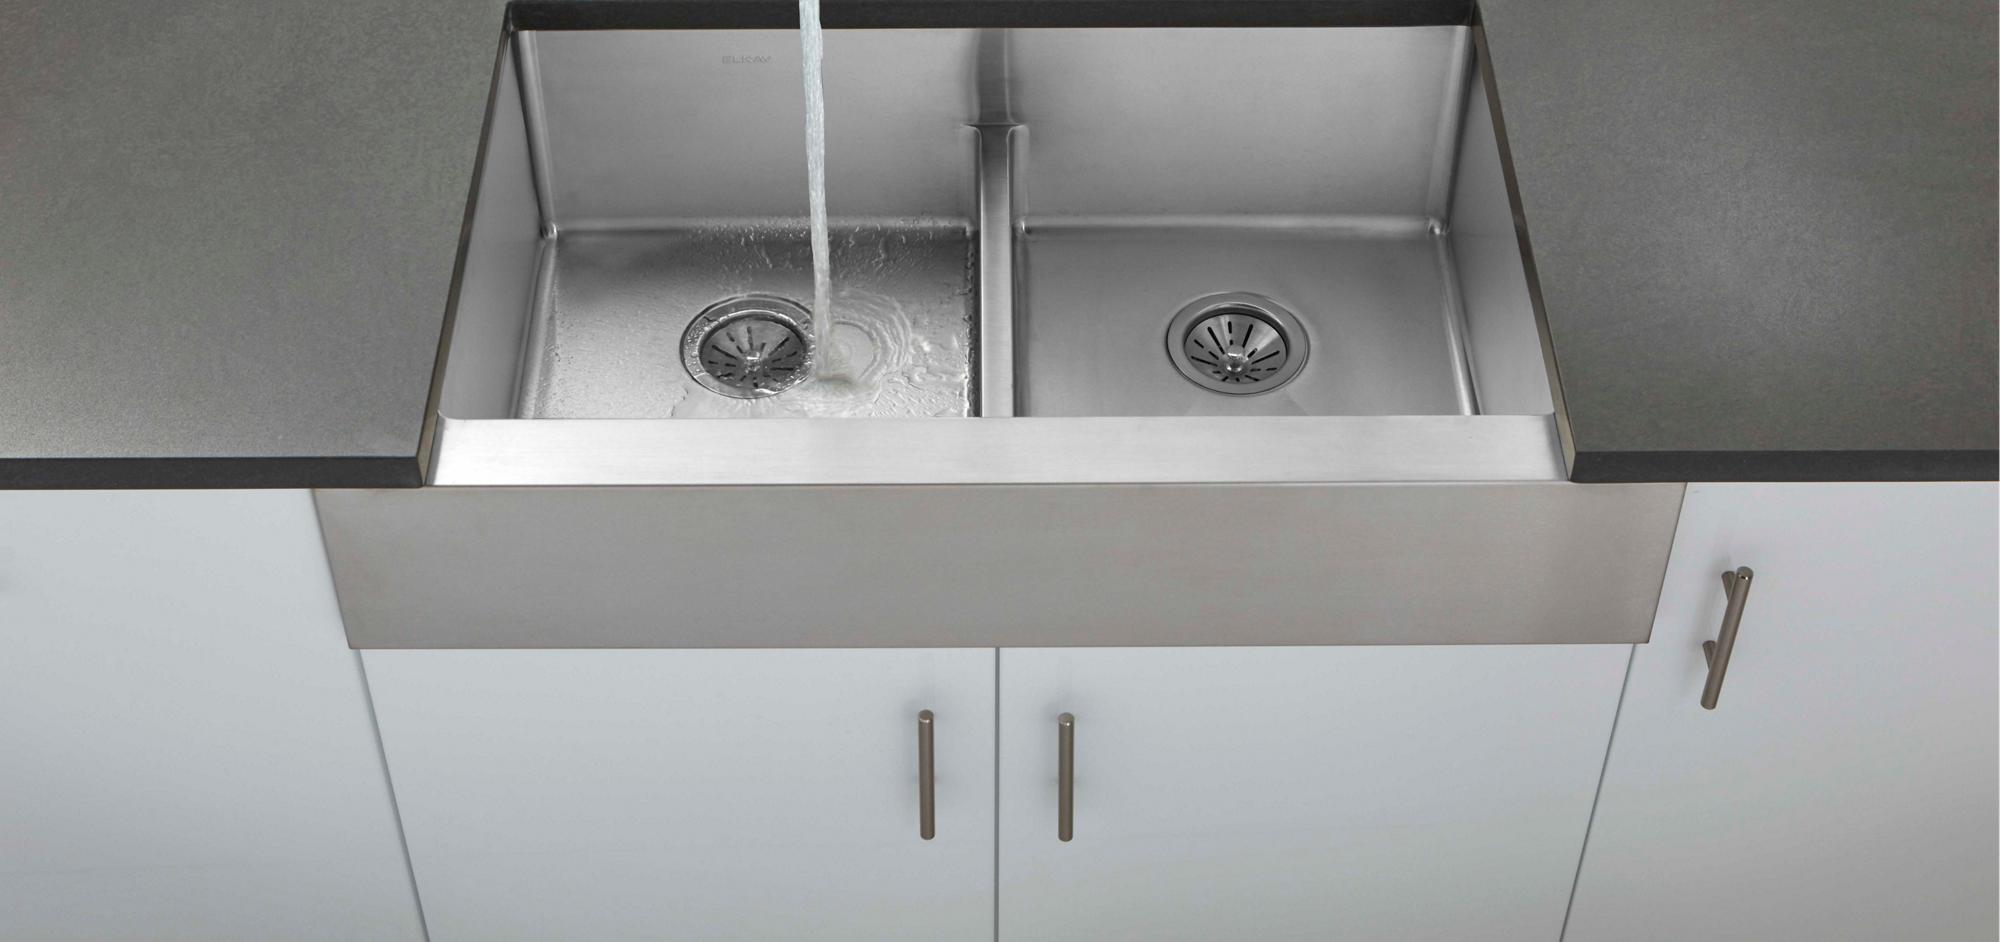 x improvement pdp sink stainless undermount wayfair double kitchen ca steel home basin stylish sinks